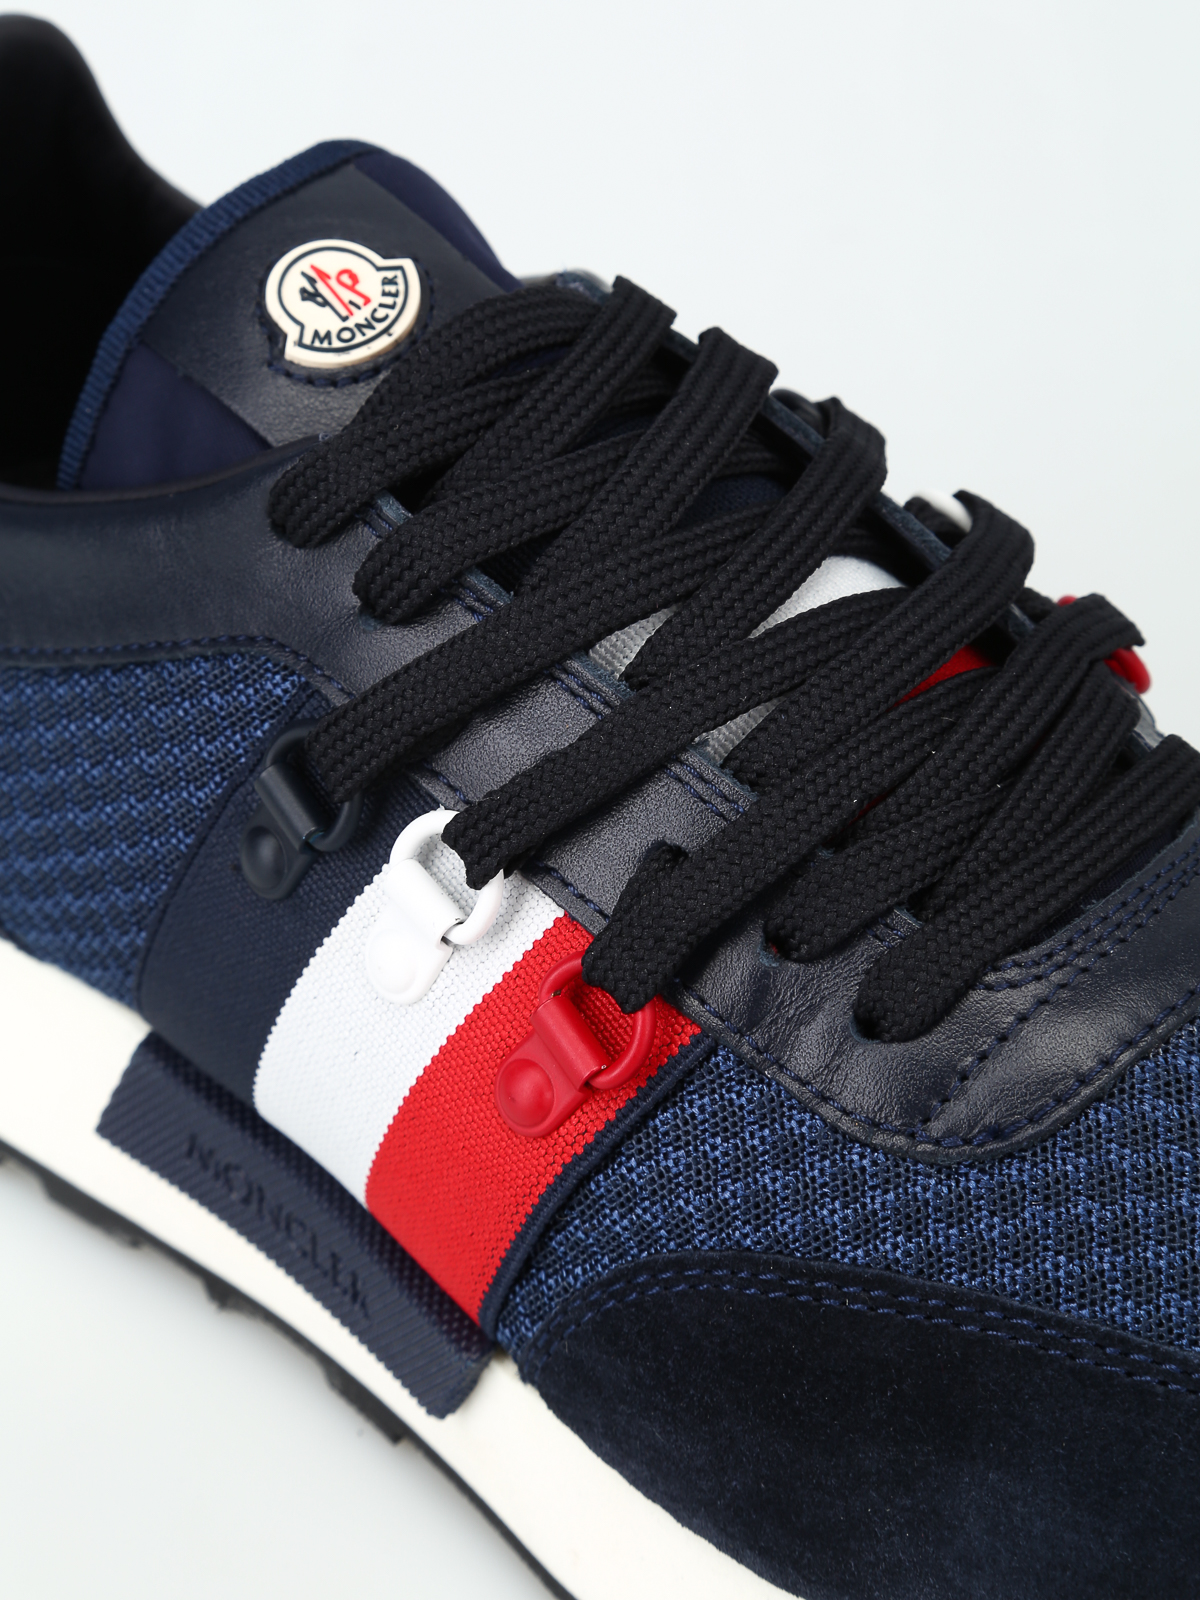 625275b6d Moncler - New Horace white sneakers - trainers - D2 09A 1028700 ...